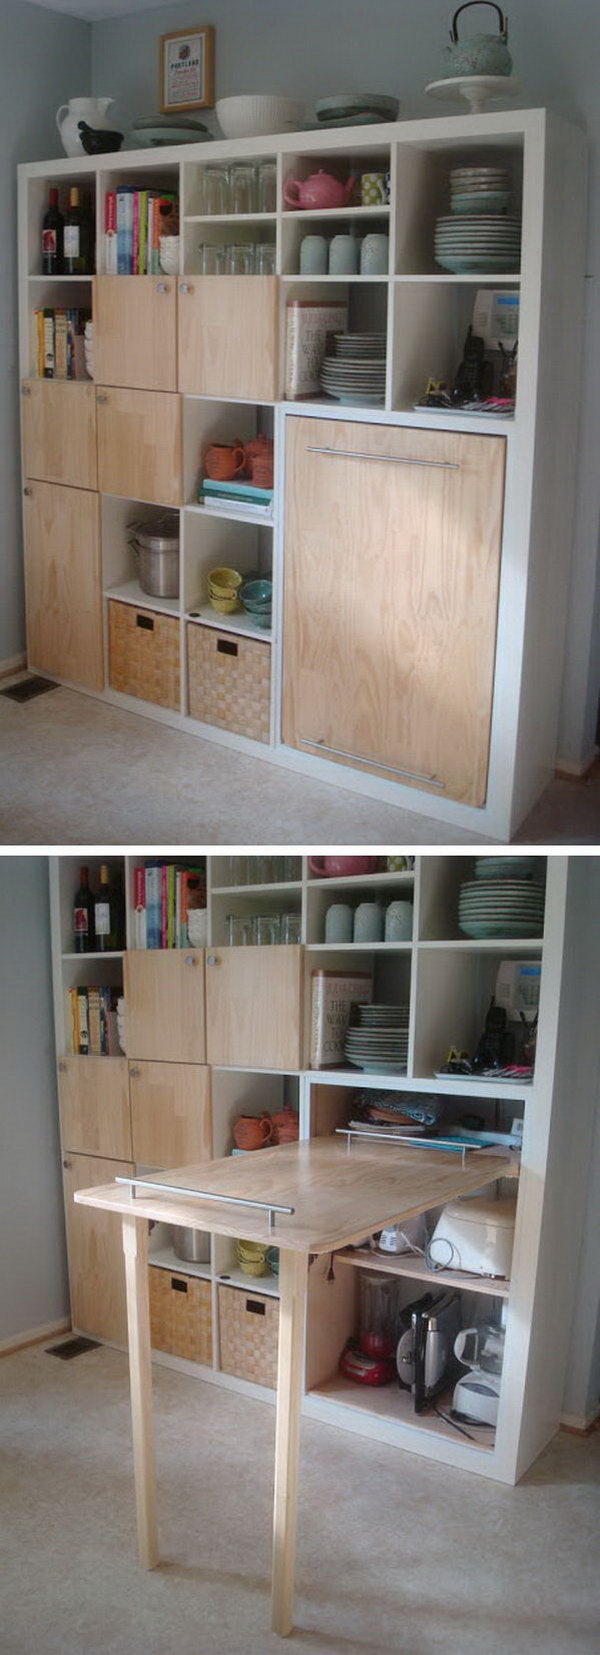 Clever kitchen storage ideas hative - Kitchen storage for small spaces ideas ...